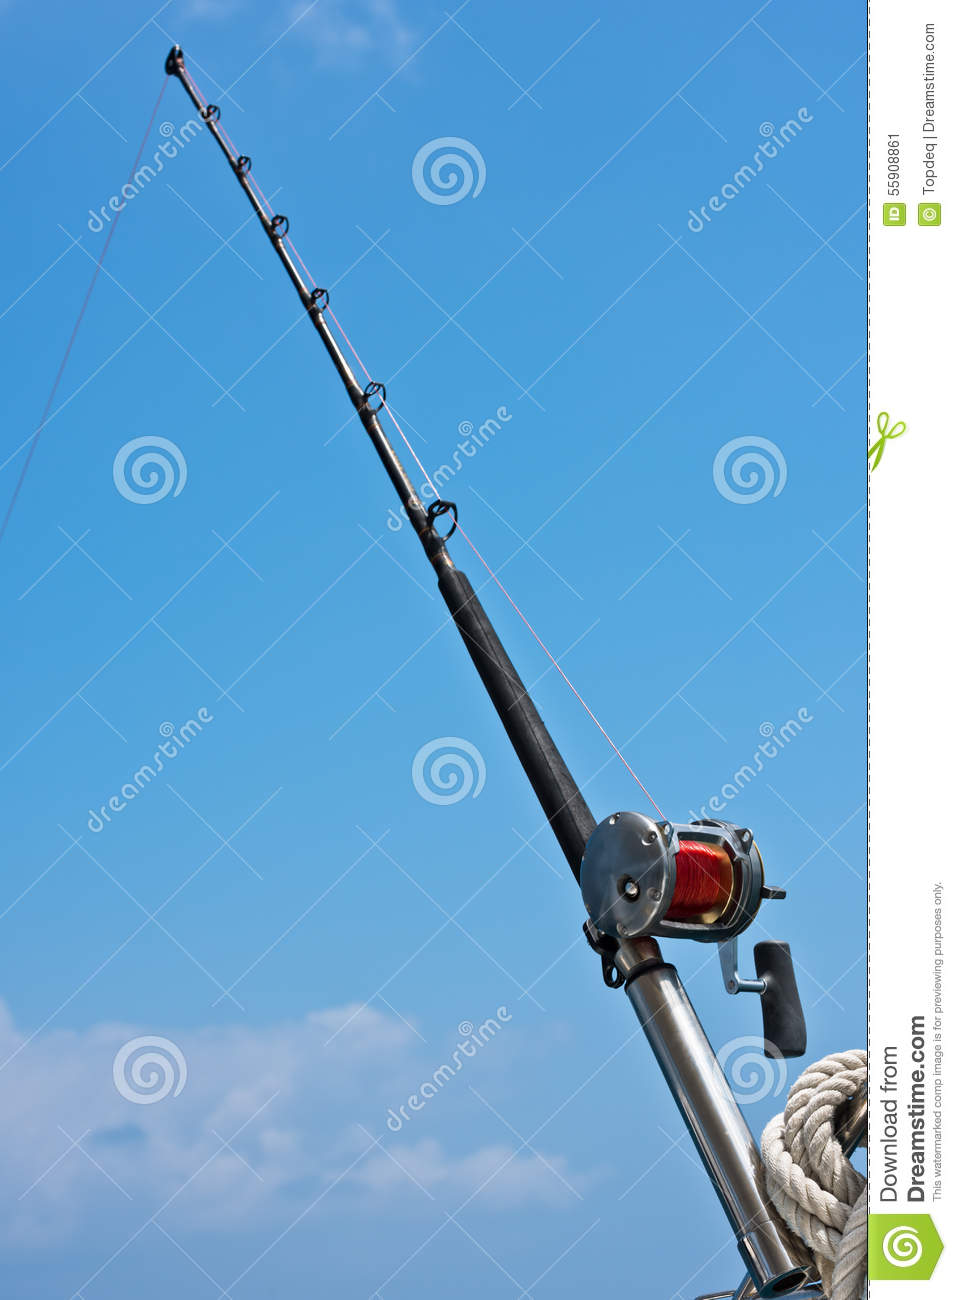 Fishing rod and reel on a yacht for Shooting fishing rod